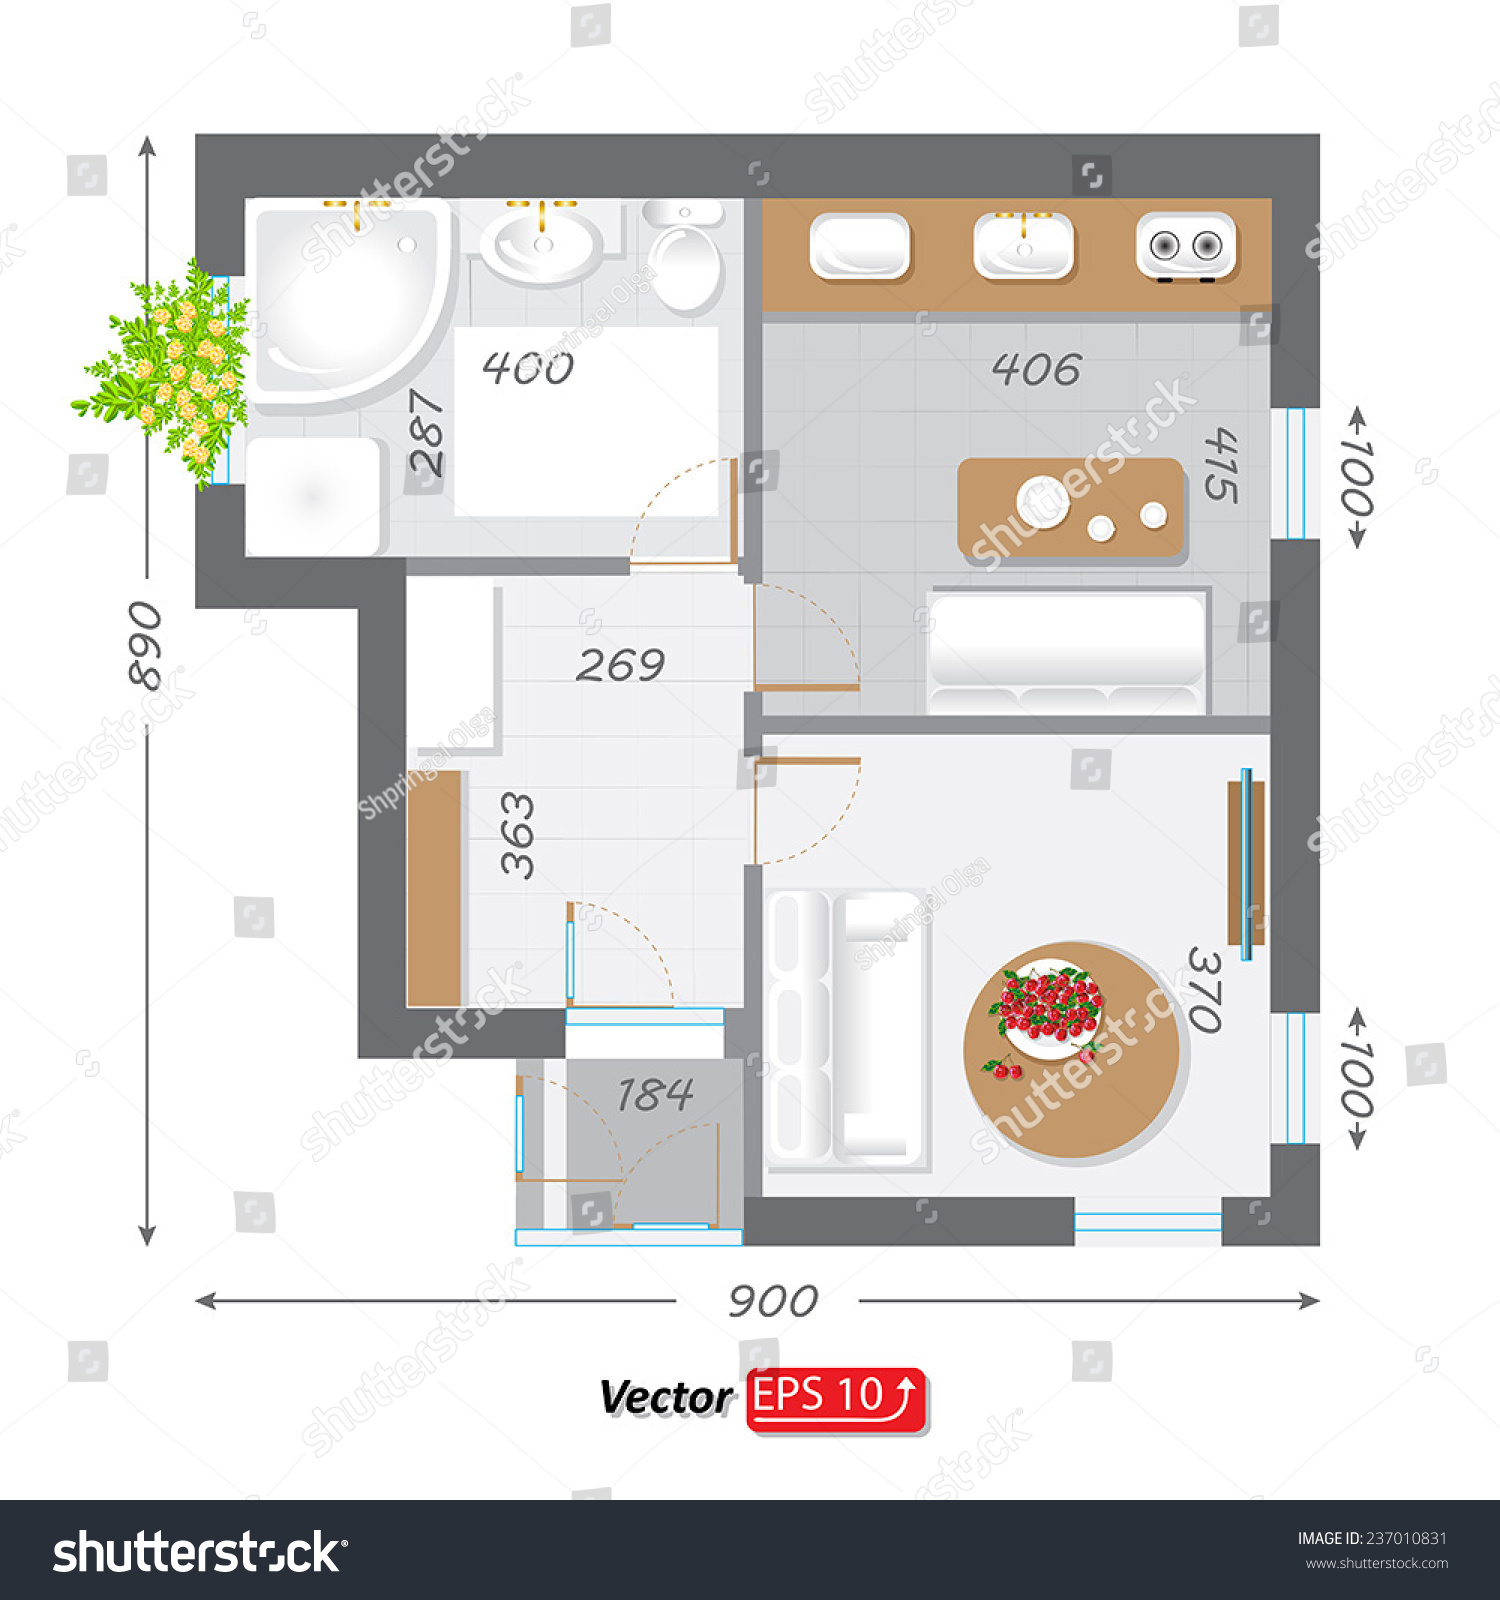 Part architectural project ground floor plan stock vector for Architectural design floor plans